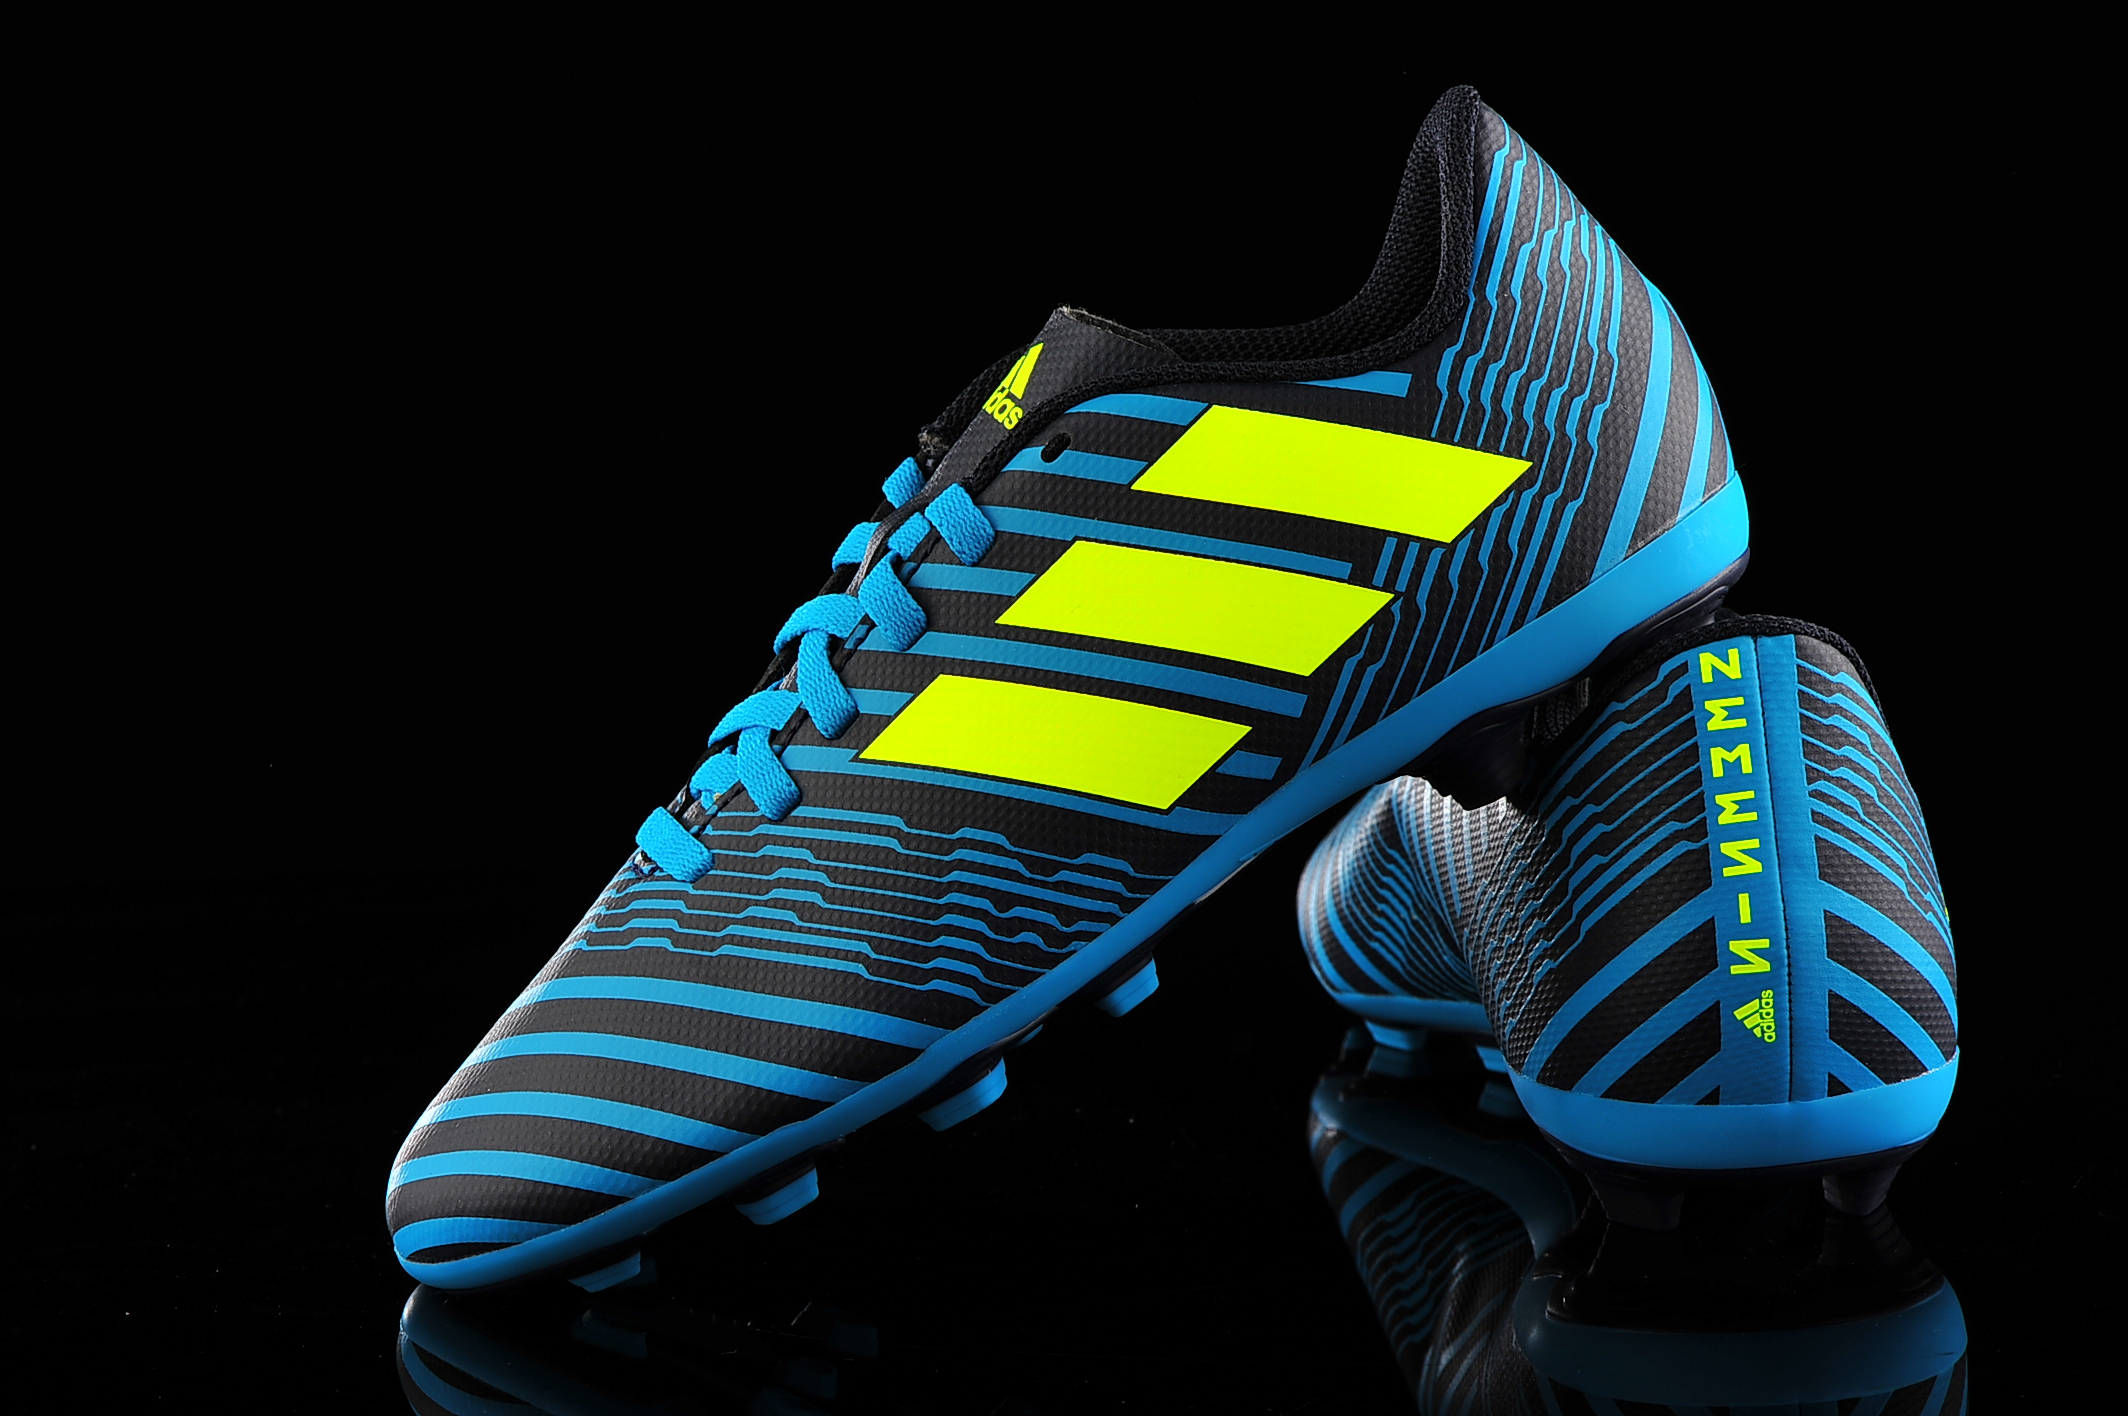 Vagabundo Oculto Ártico  adidas Nemeziz 17.4 FxG Junior S82458 | R-GOL.com - Football boots &  equipment